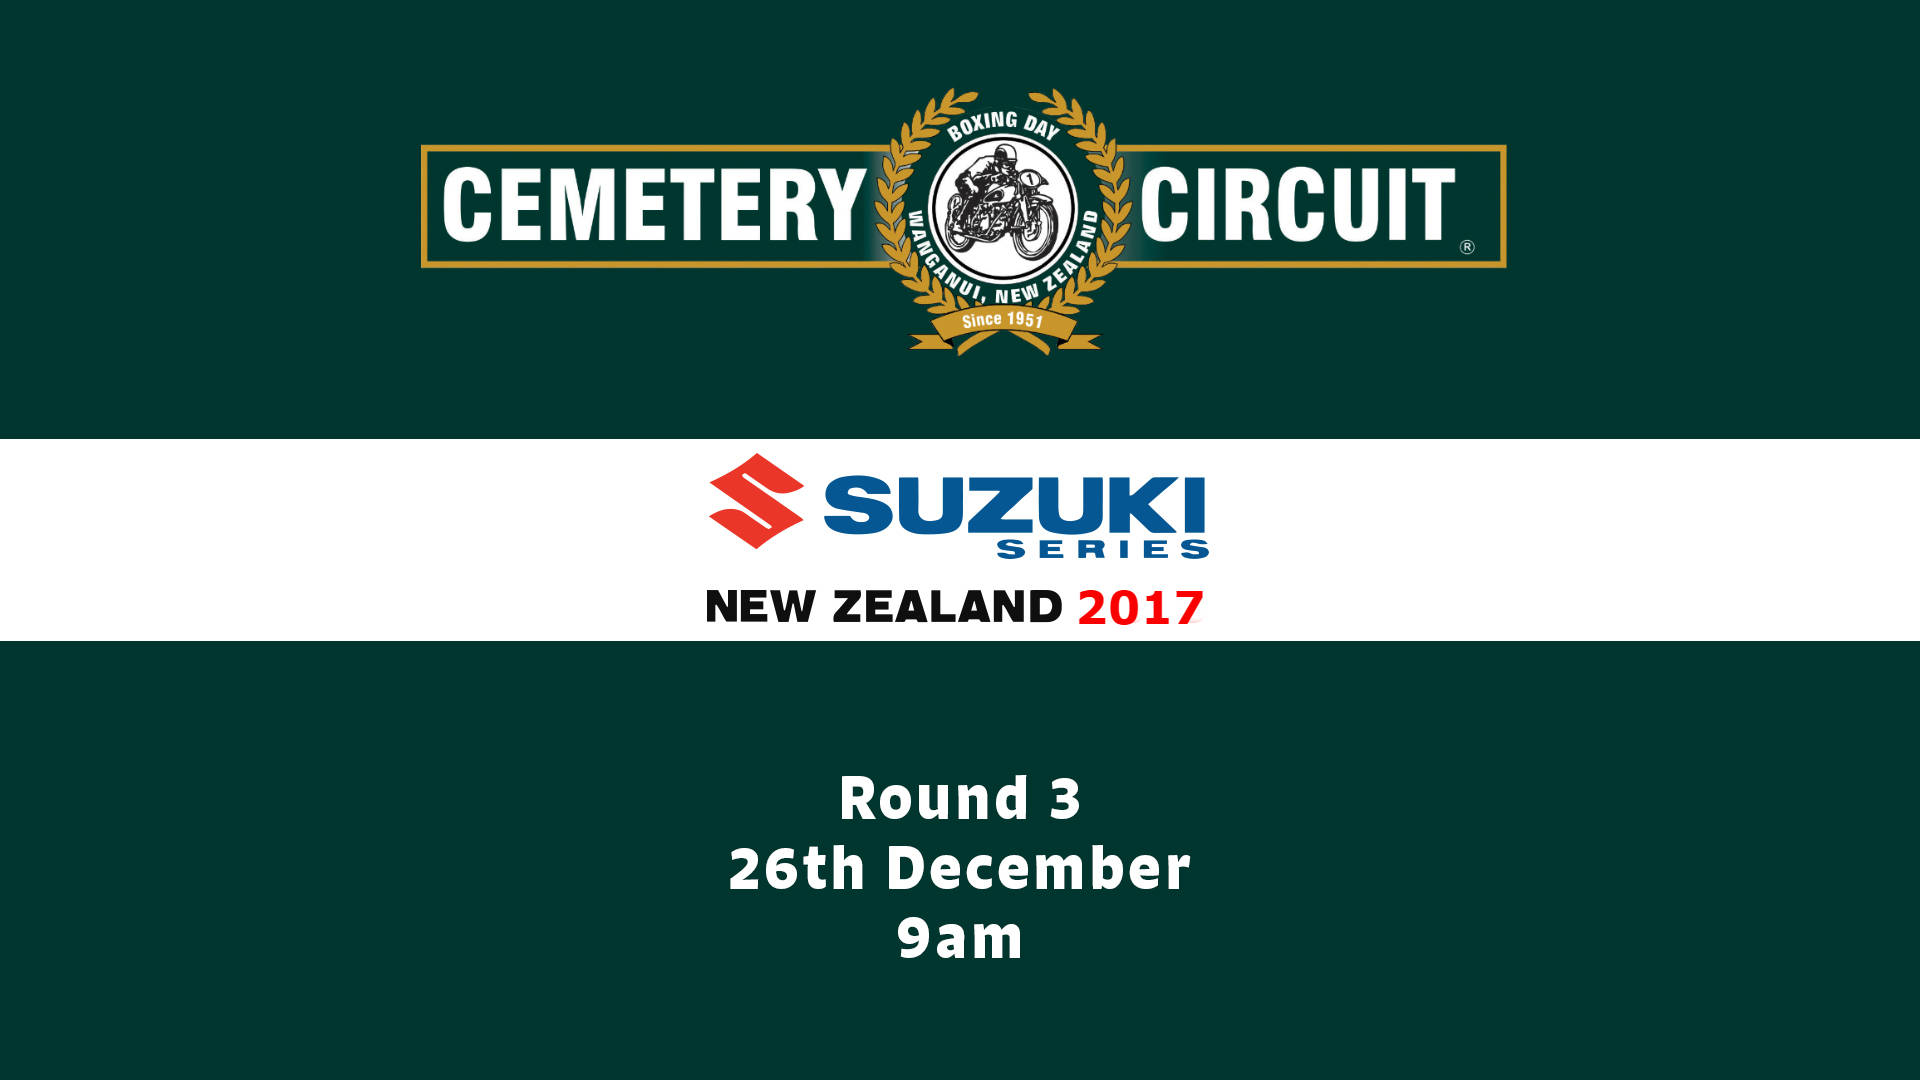 Https I Film Cleeng Com Cemetery Circuit  E_nzmissed The Live Action From Whanganui On Boxing Day Login Here And See All The Races On Demand